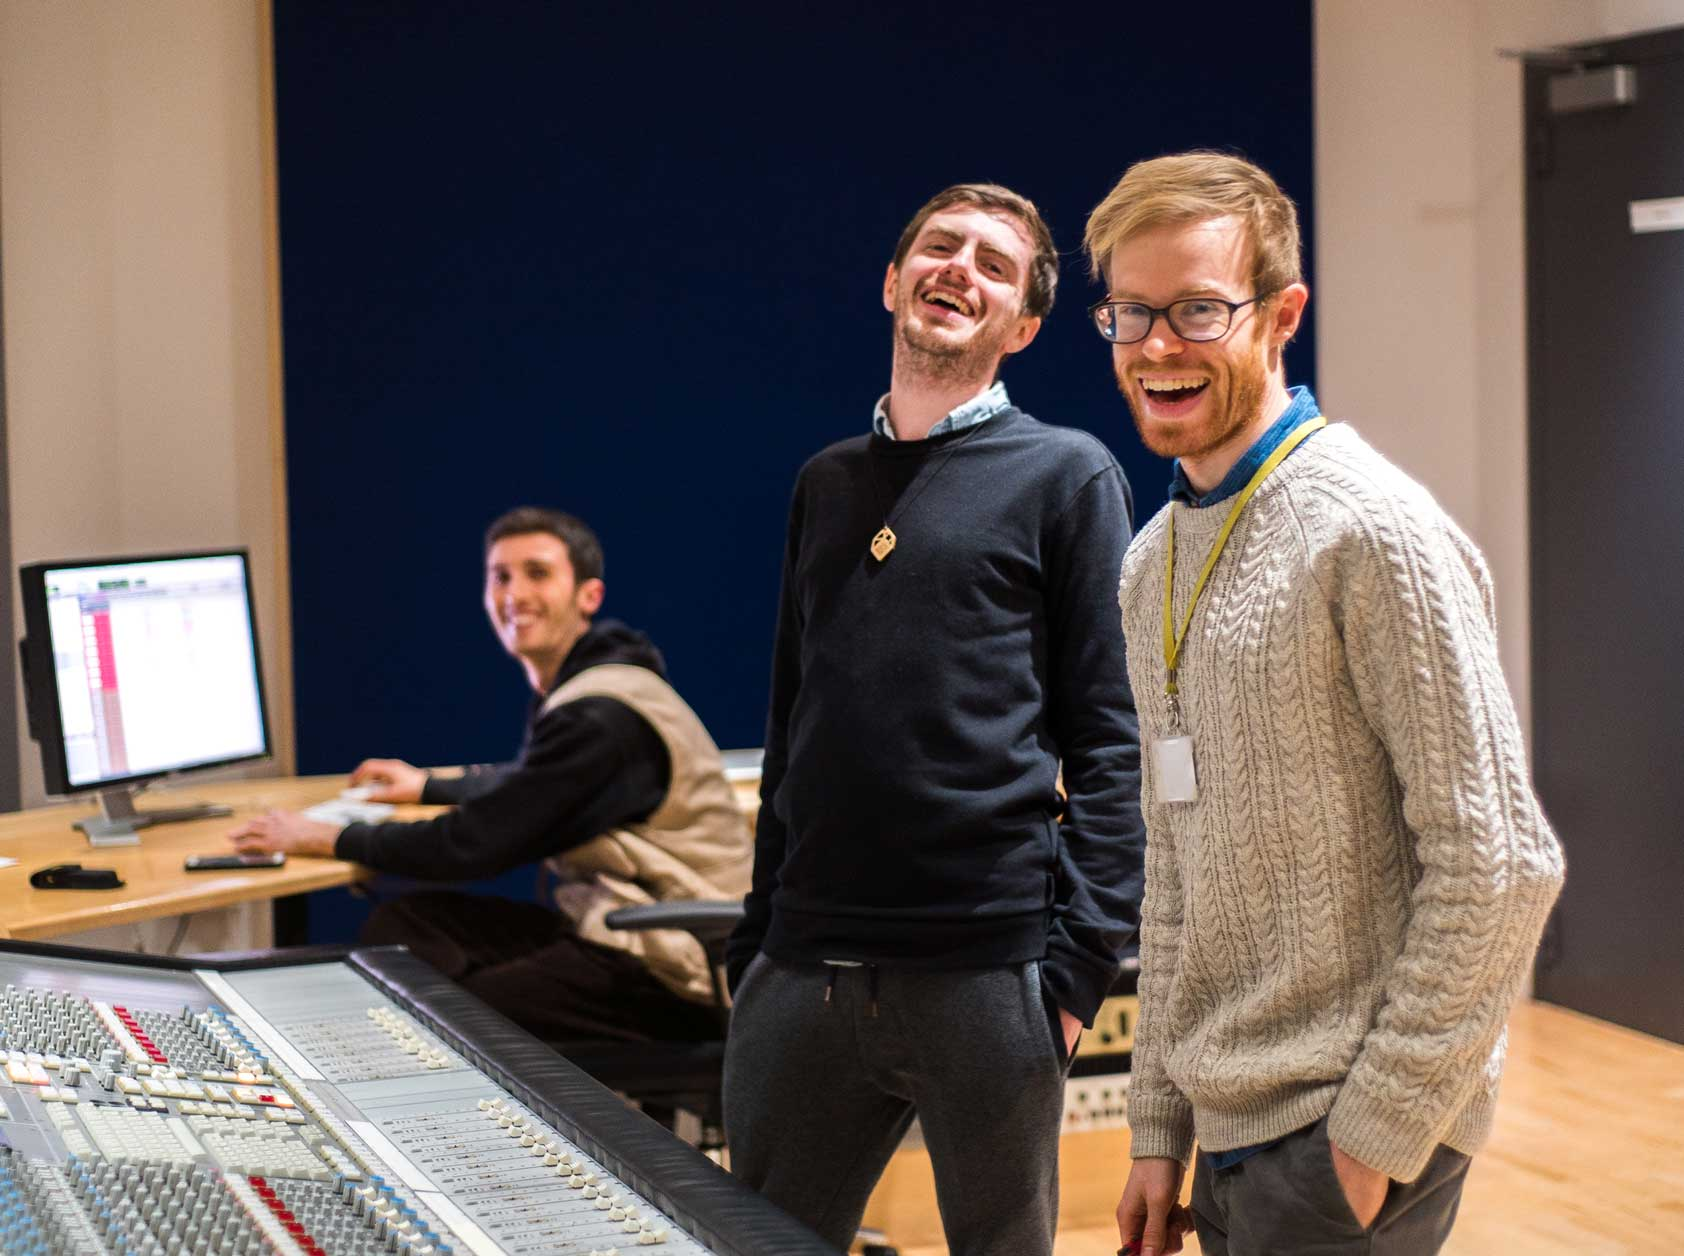 In the studio recording the original Cumulus soundtrack, from left to right: Nicolò Panzarasa (Recording Engineer), Ioan Holland (Director & Writer), Aaron Buckley (Soundtrack Composer)